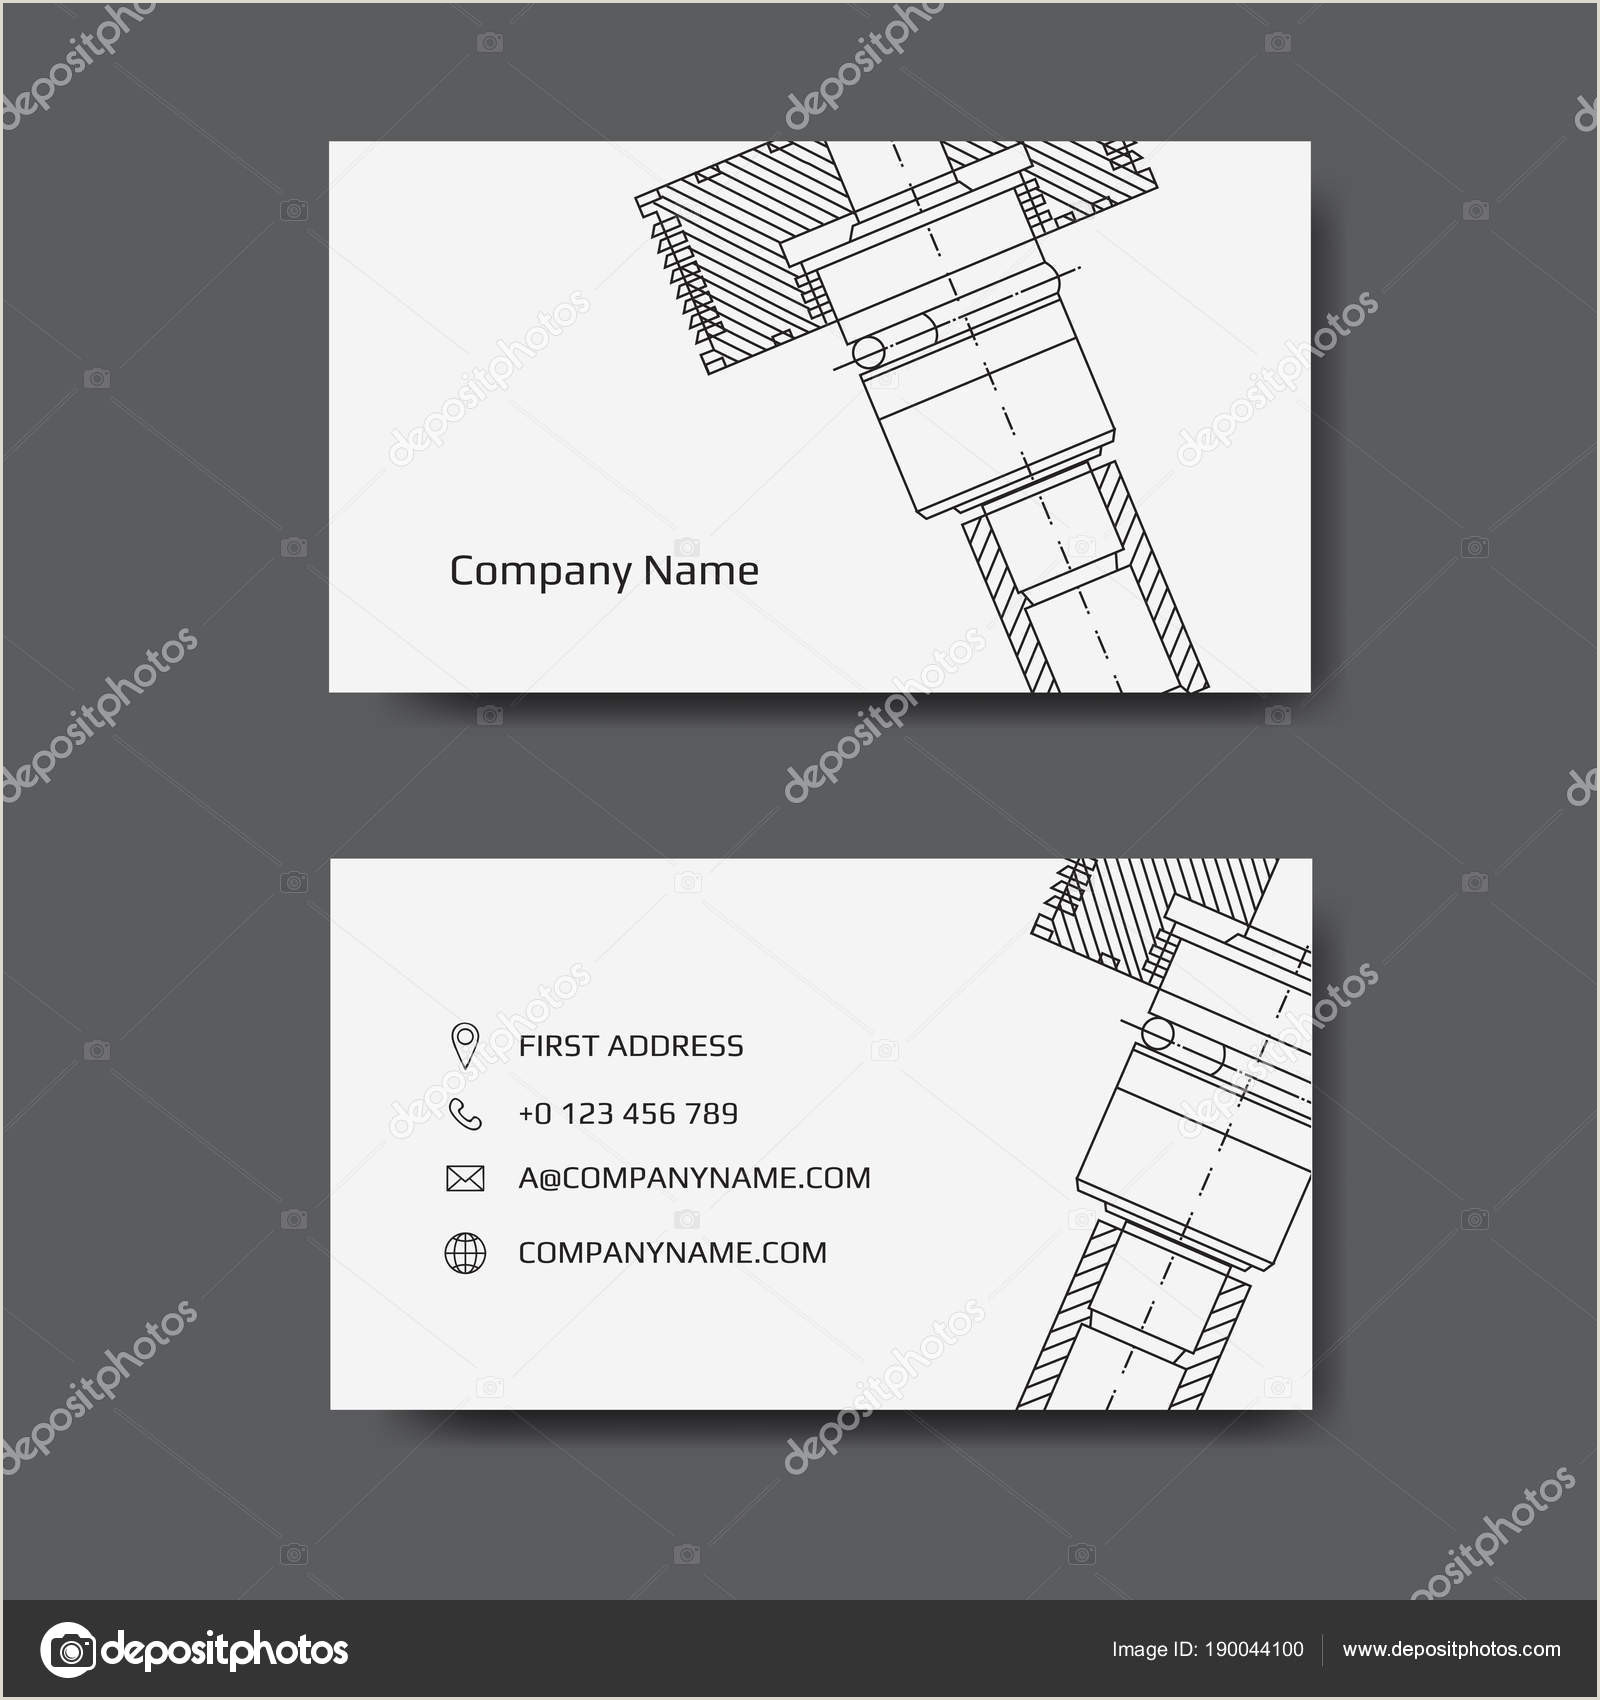 Unique Business Cards Engineering Business Card For Engineer And Mechanical Engineering Business Card